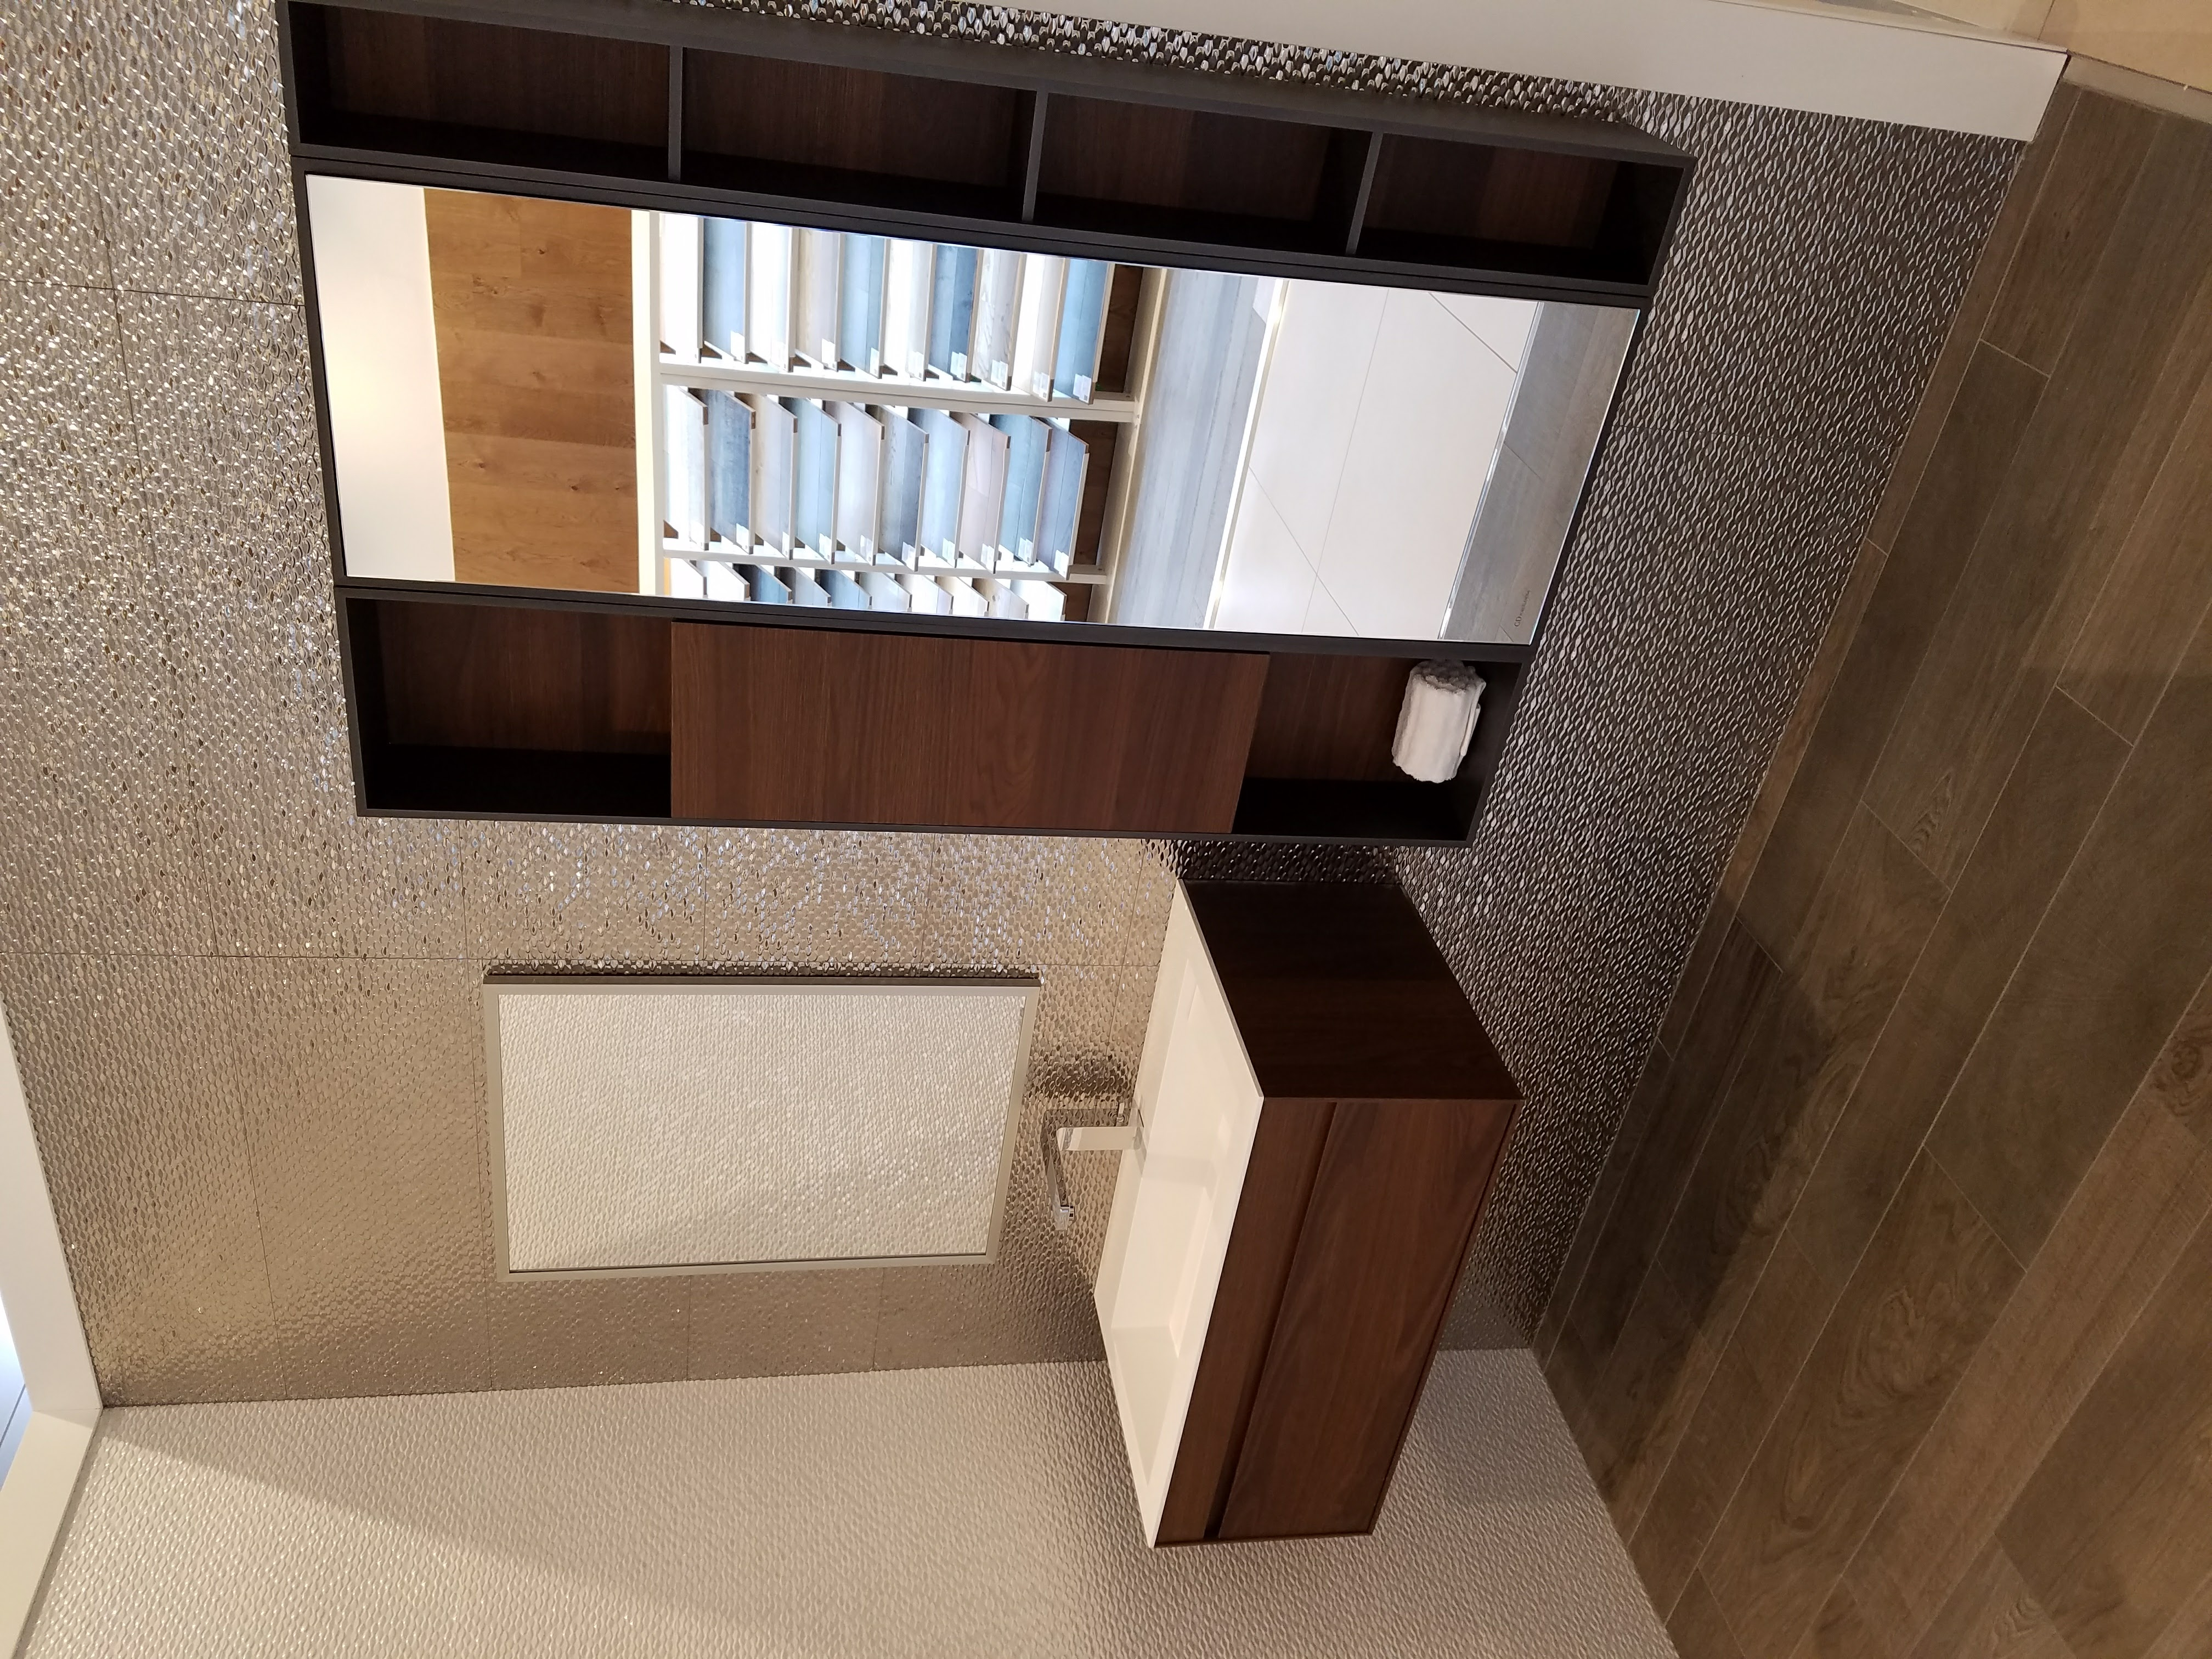 price we at diego affordable an vanities your remodeling provide will team our carlsbad you cabinets in oceanside and design help bathroom area san